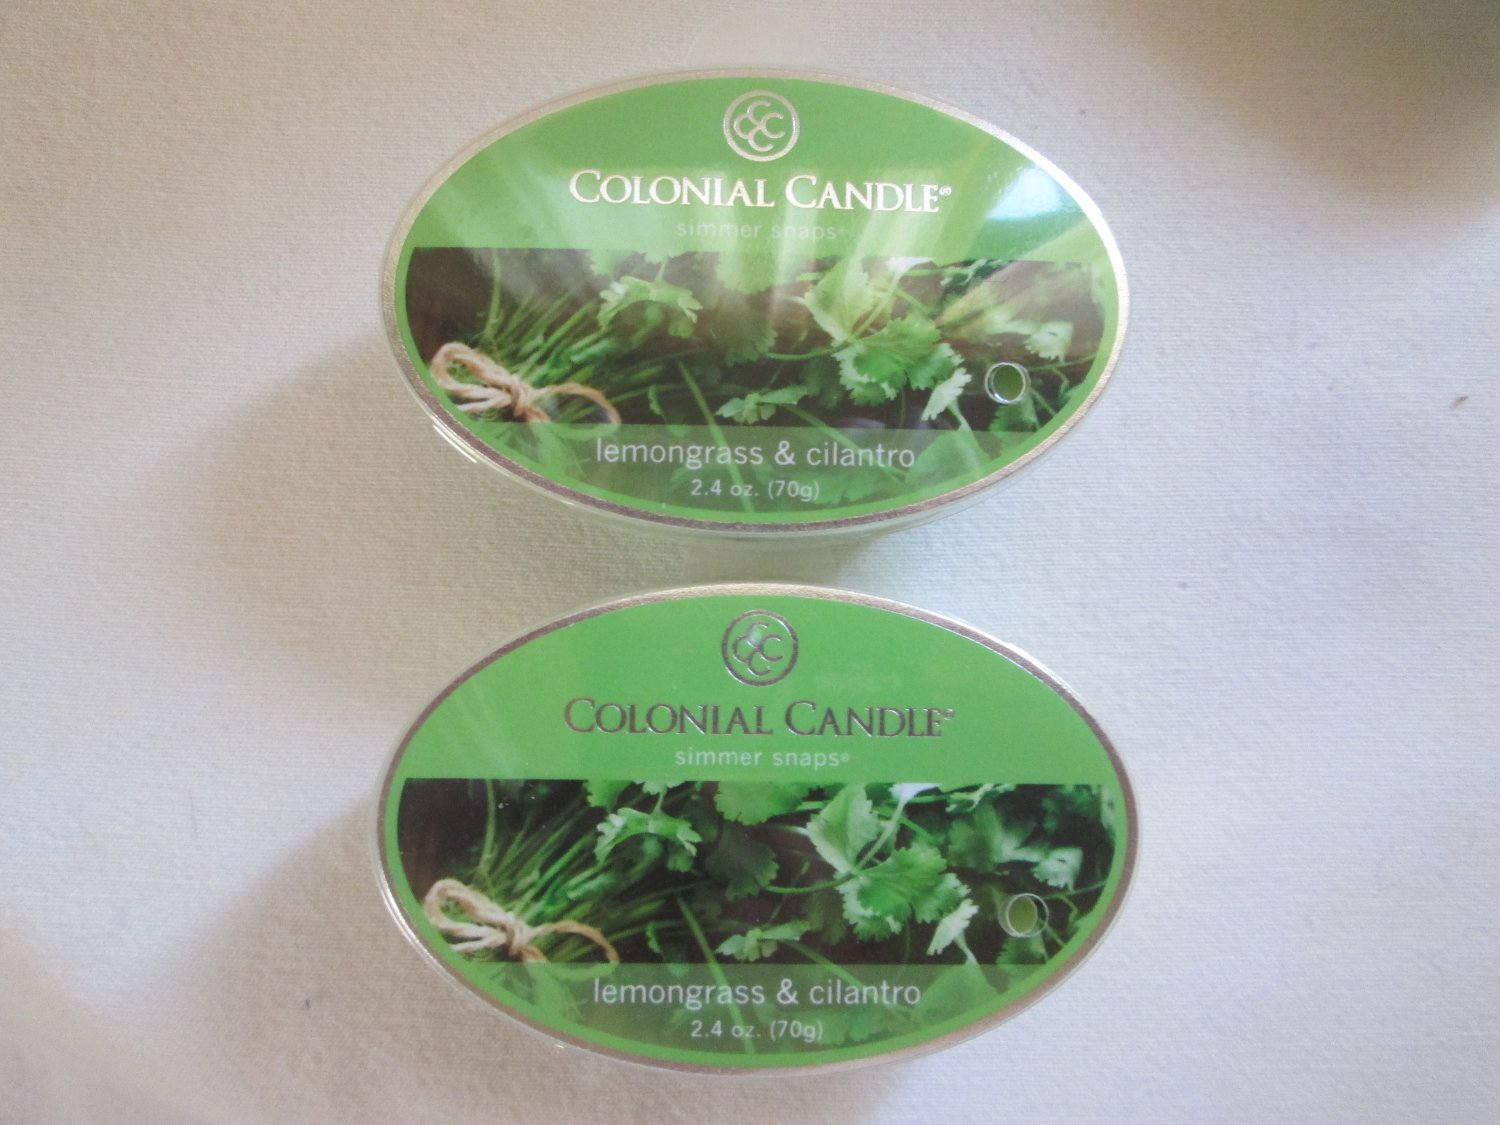 "2 Colonial Candle Simmer Snaps""LEMONGRASS & CILANTRO"" 2.4 oz wax melts/ tarts"